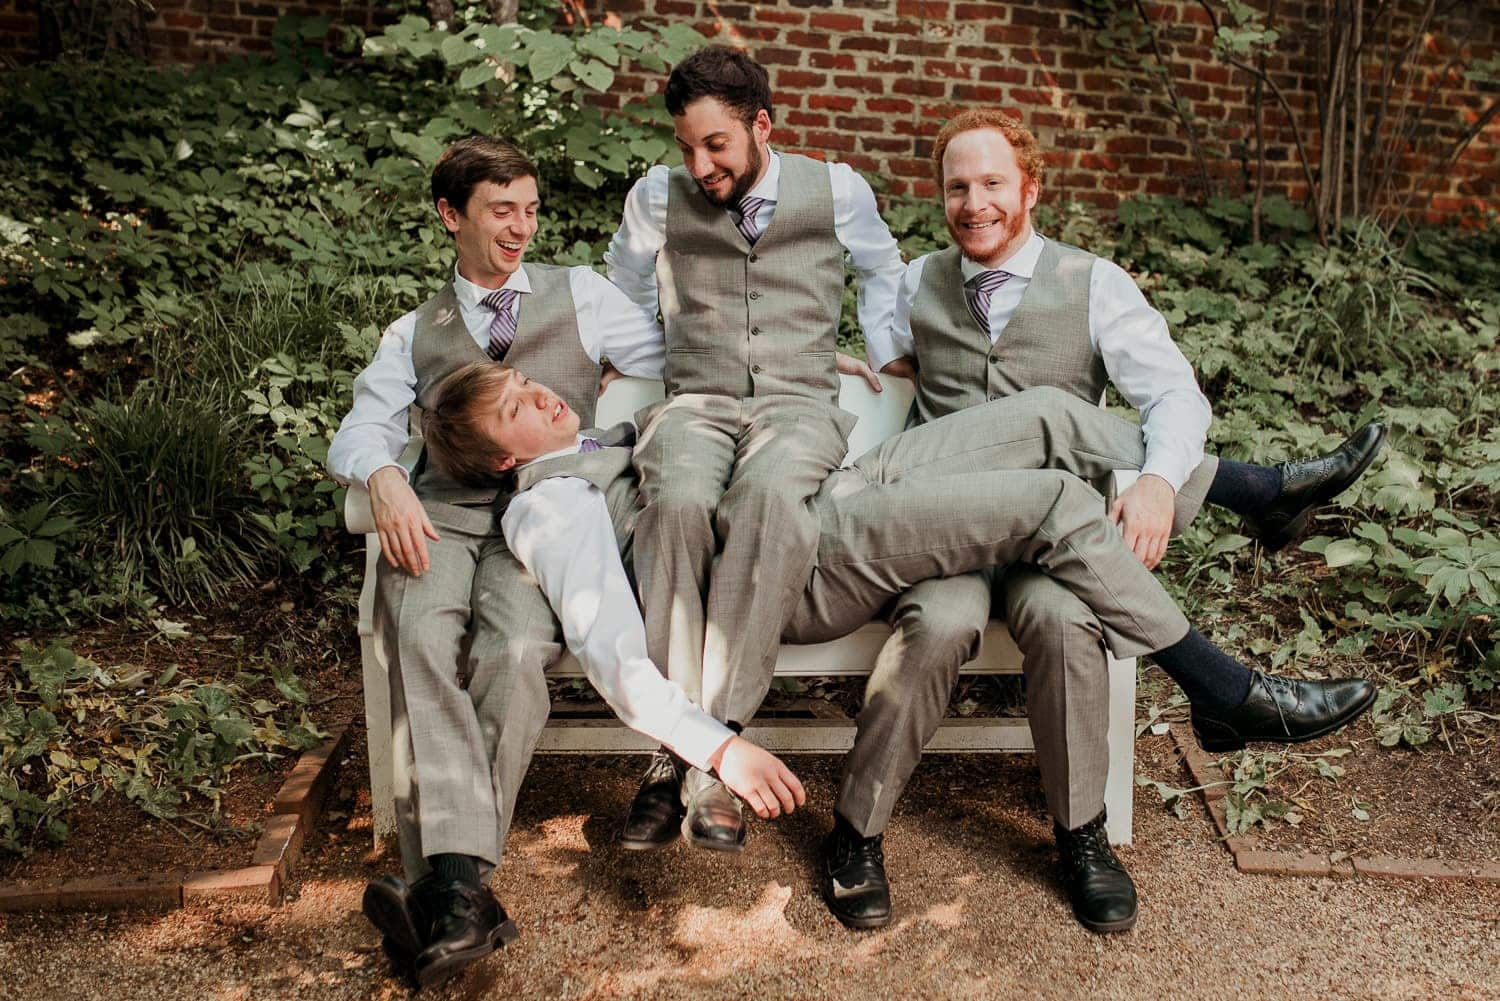 The groomsmen are being silly. One is sitting on top of another.